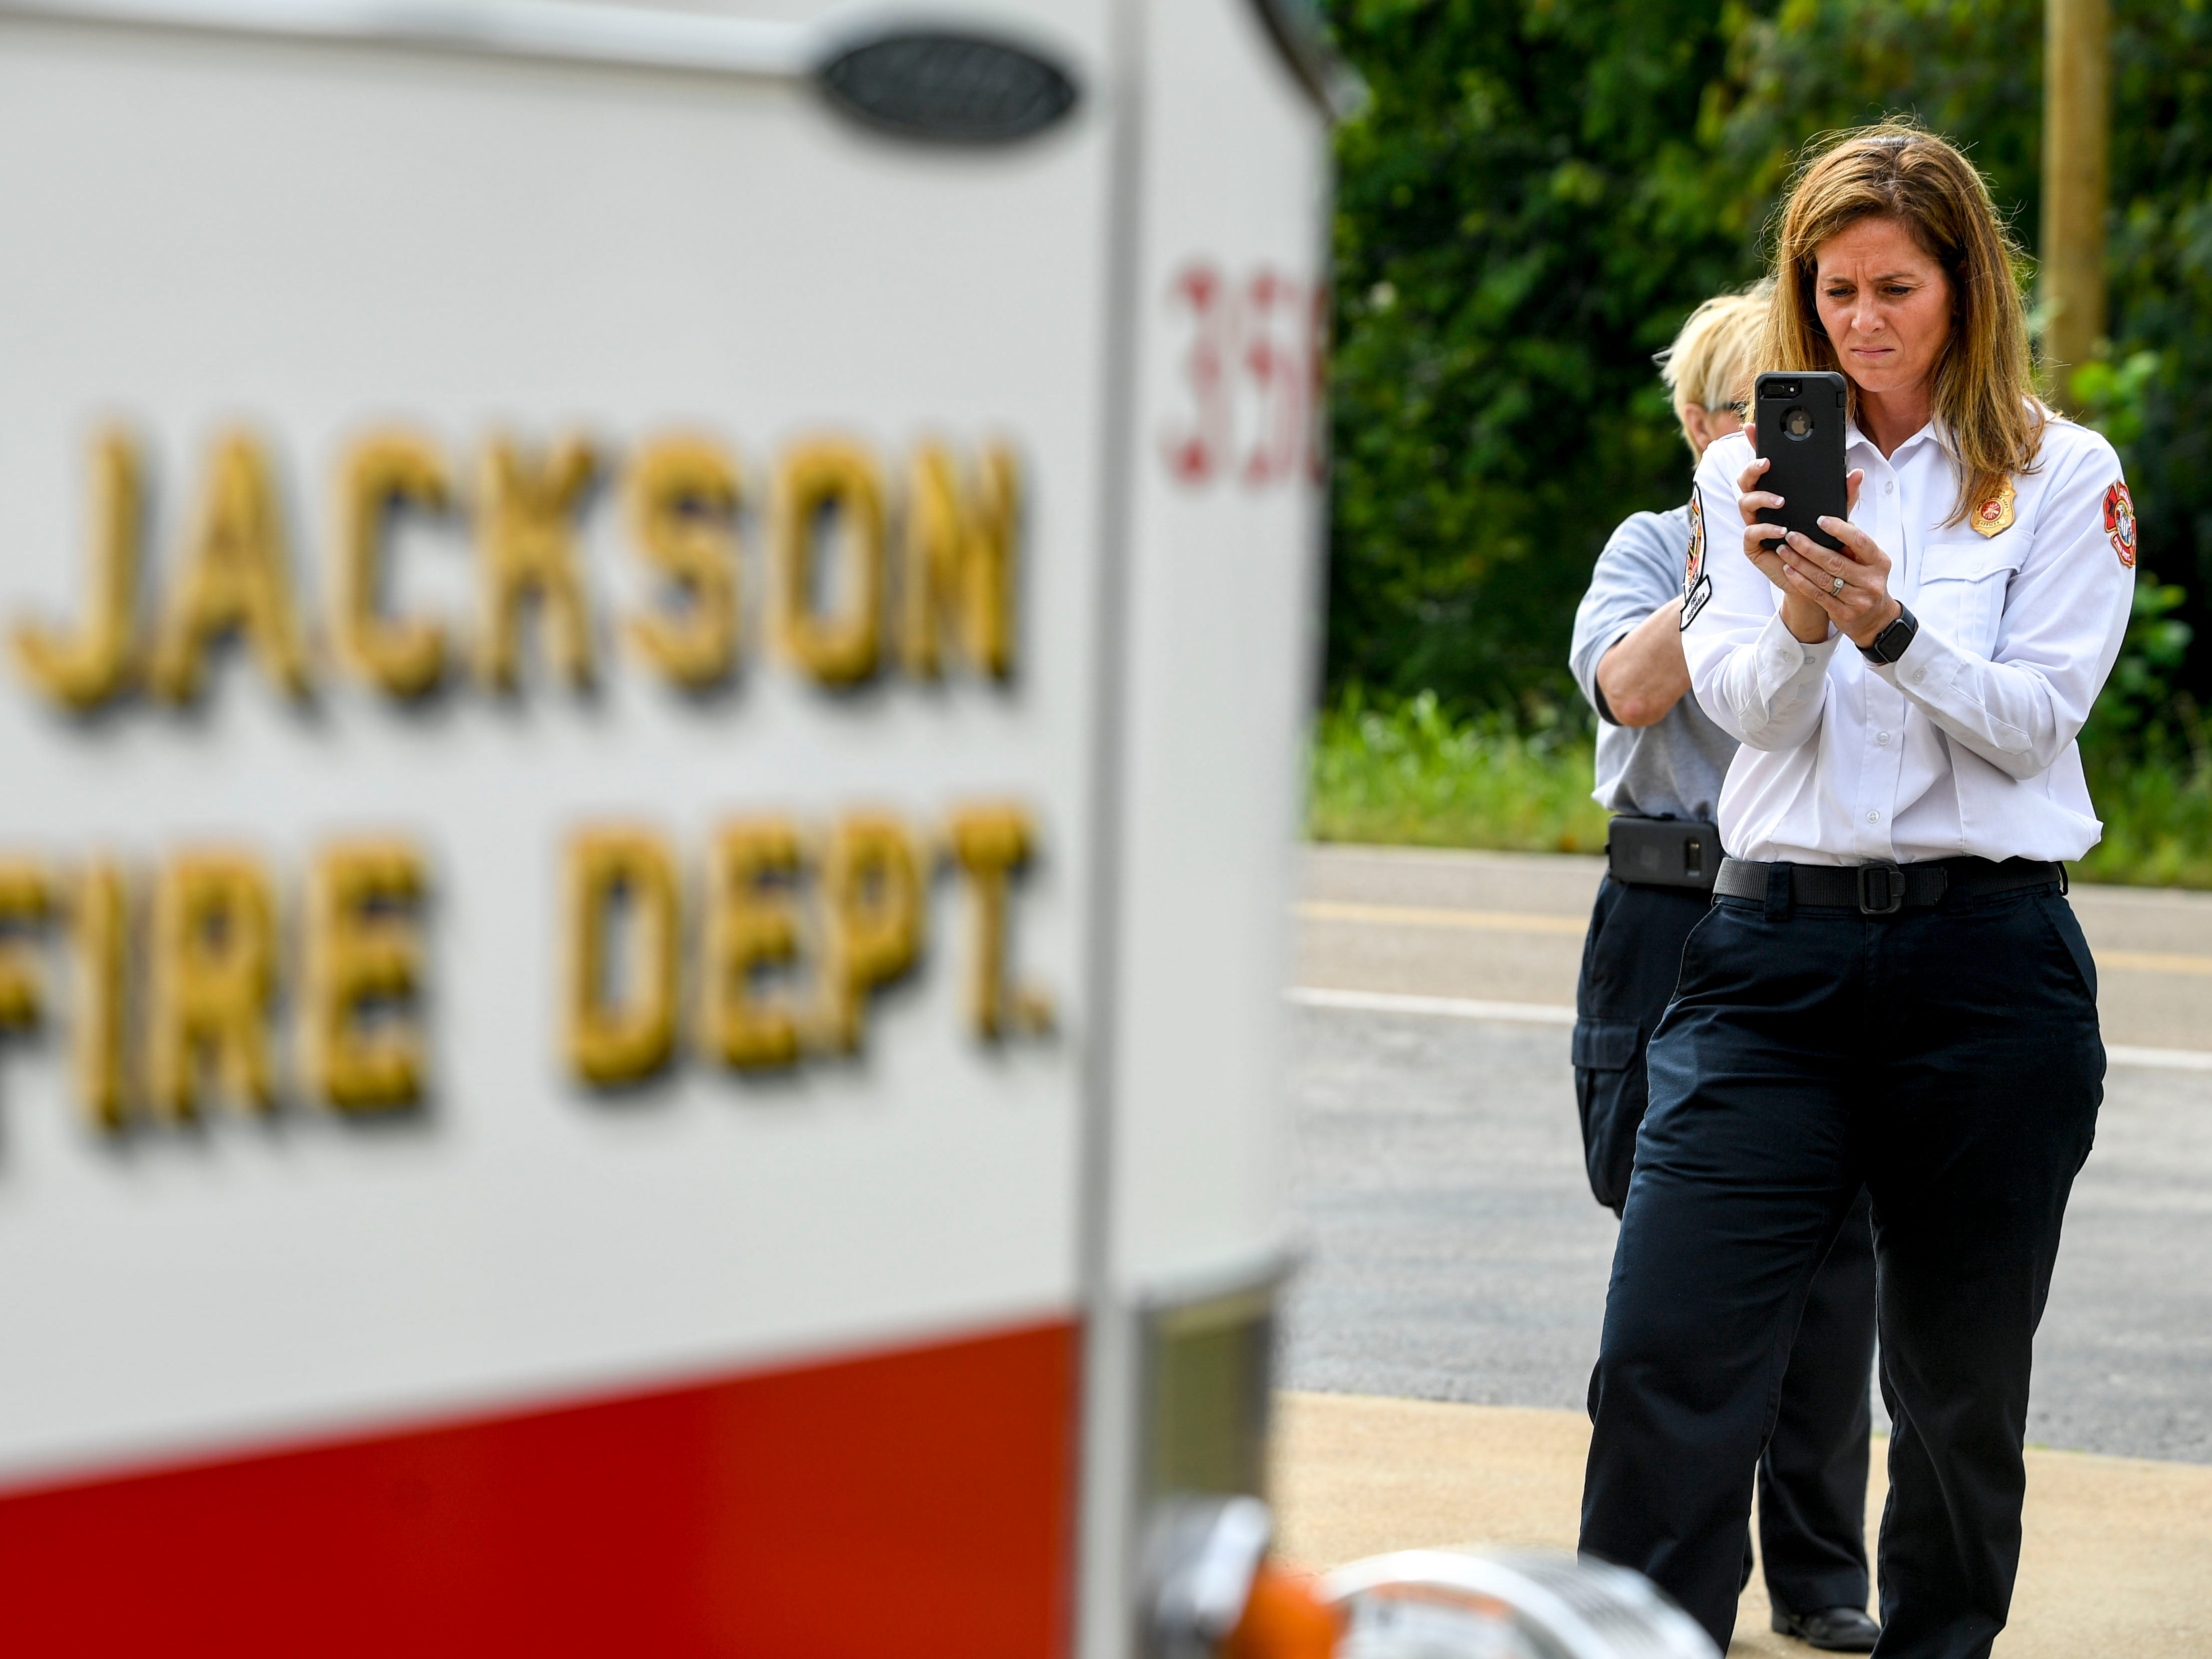 Jana Compton, a training officer with the Jackson Fire Department, takes photos of the procedures during a ceremony honoring the victims of the 9/11 attacks at Fire Station 3 in Jackson, Tenn., on Tuesday, Sept. 11, 2018.